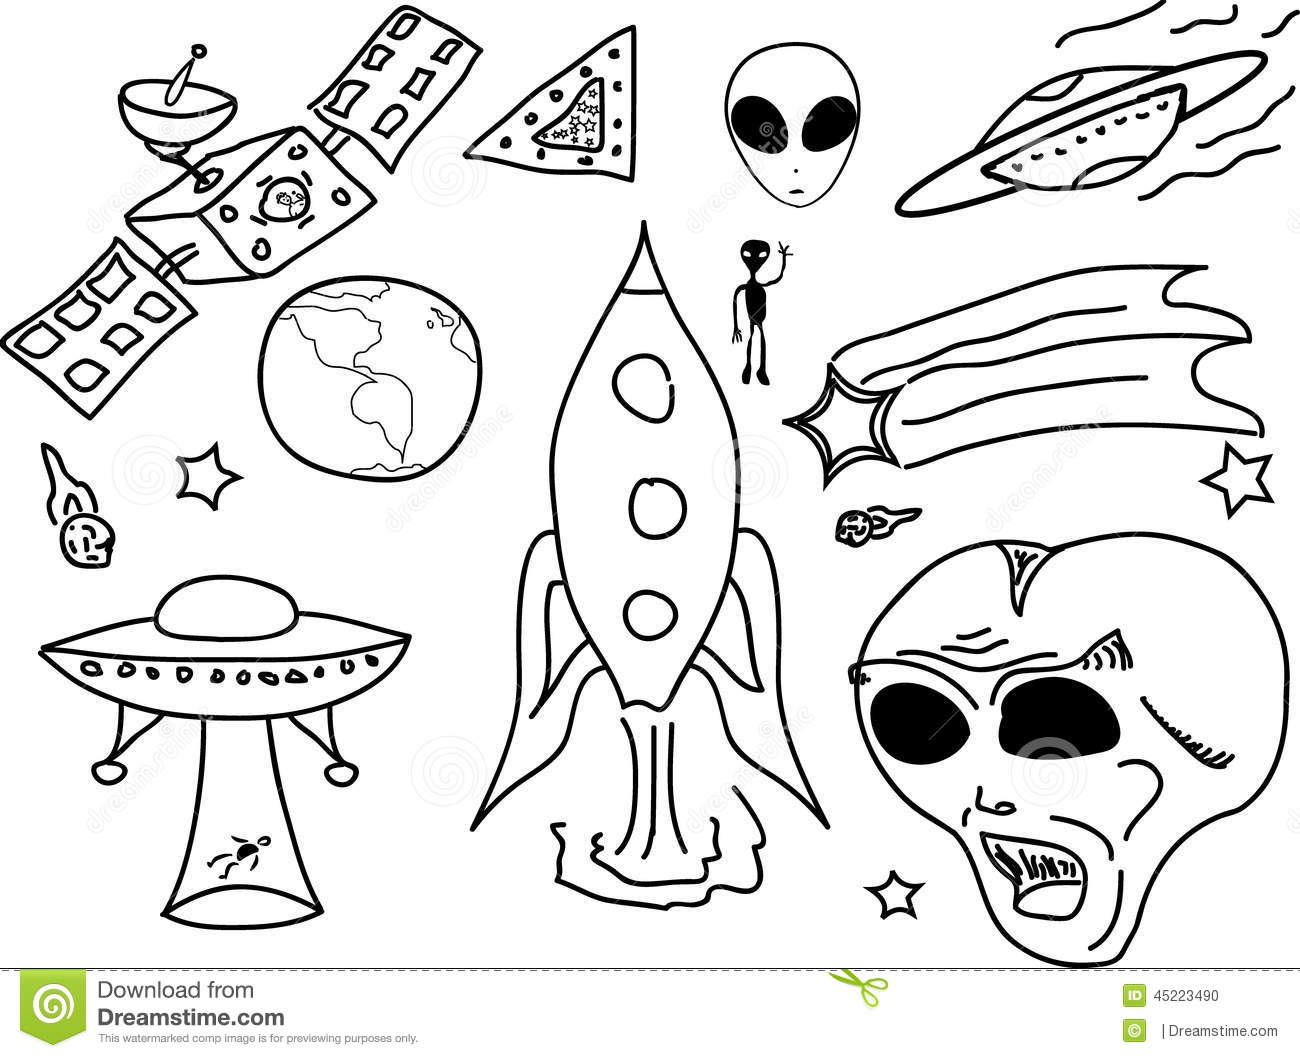 Ufo Doodle Cartoon Stock Vector Illustration Of Doodle